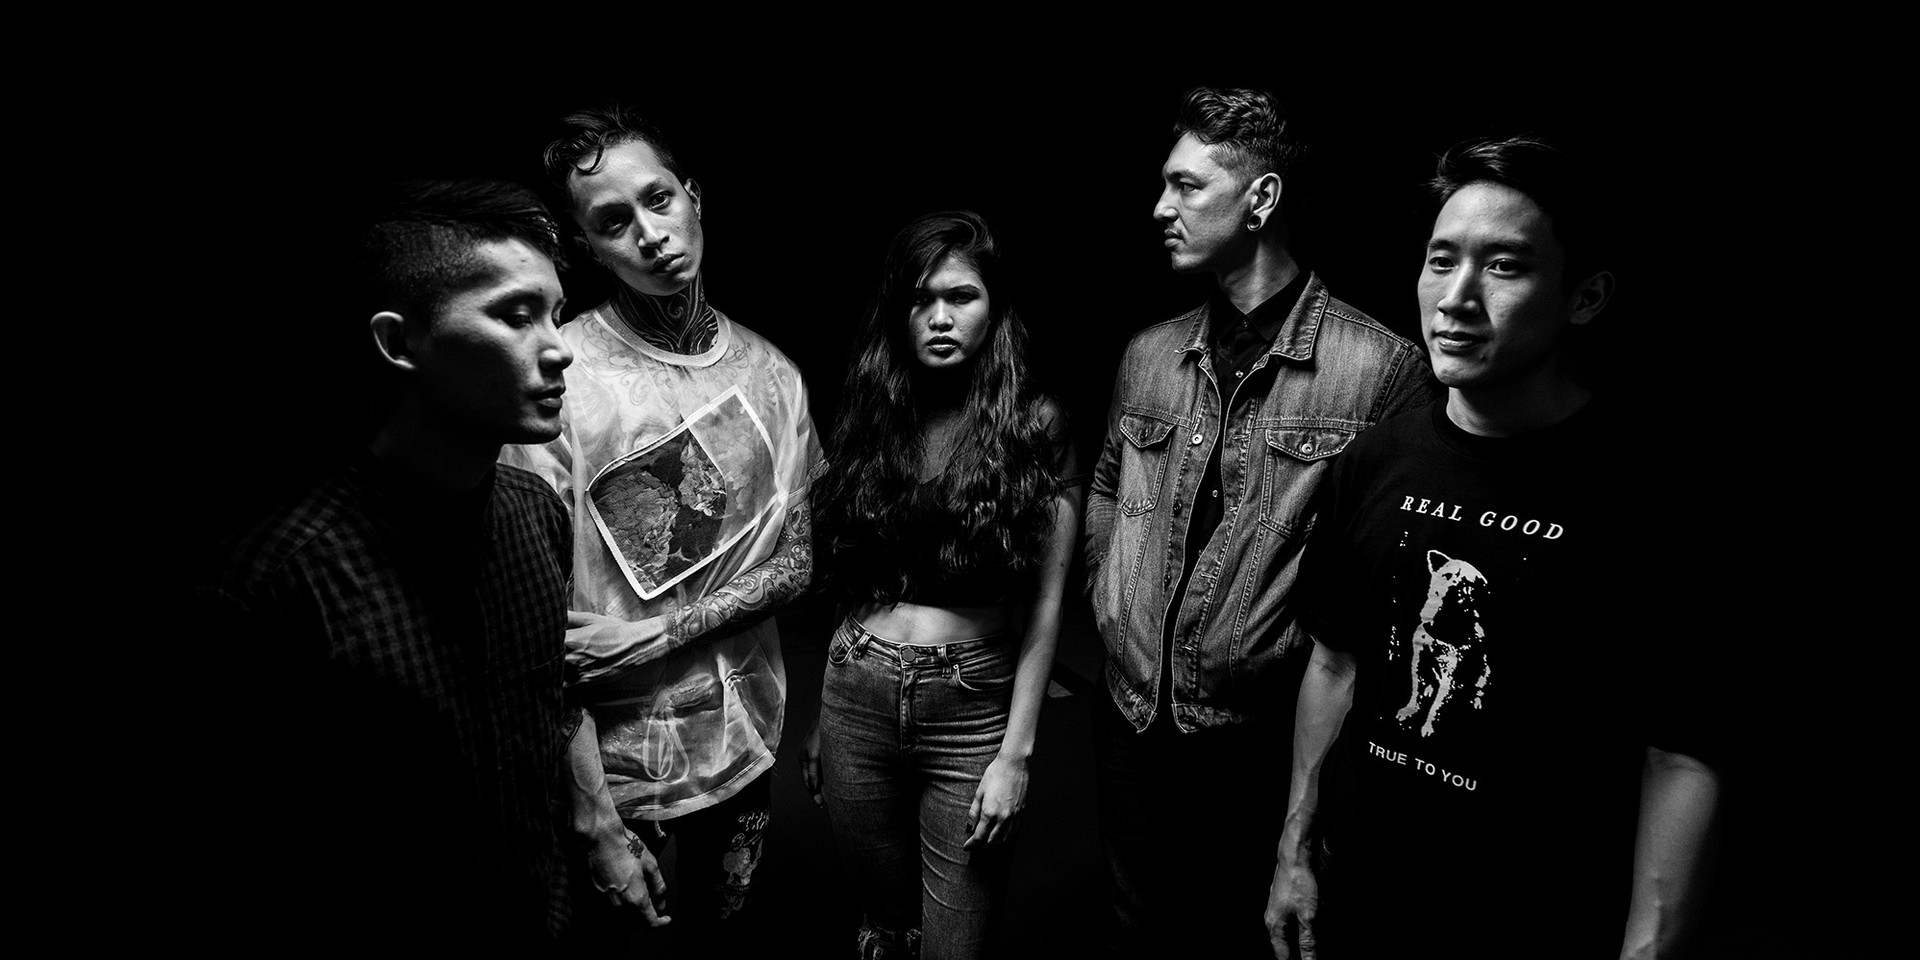 Caracal storm back into the fold with new single and video 'Manicenigmatic' – watch